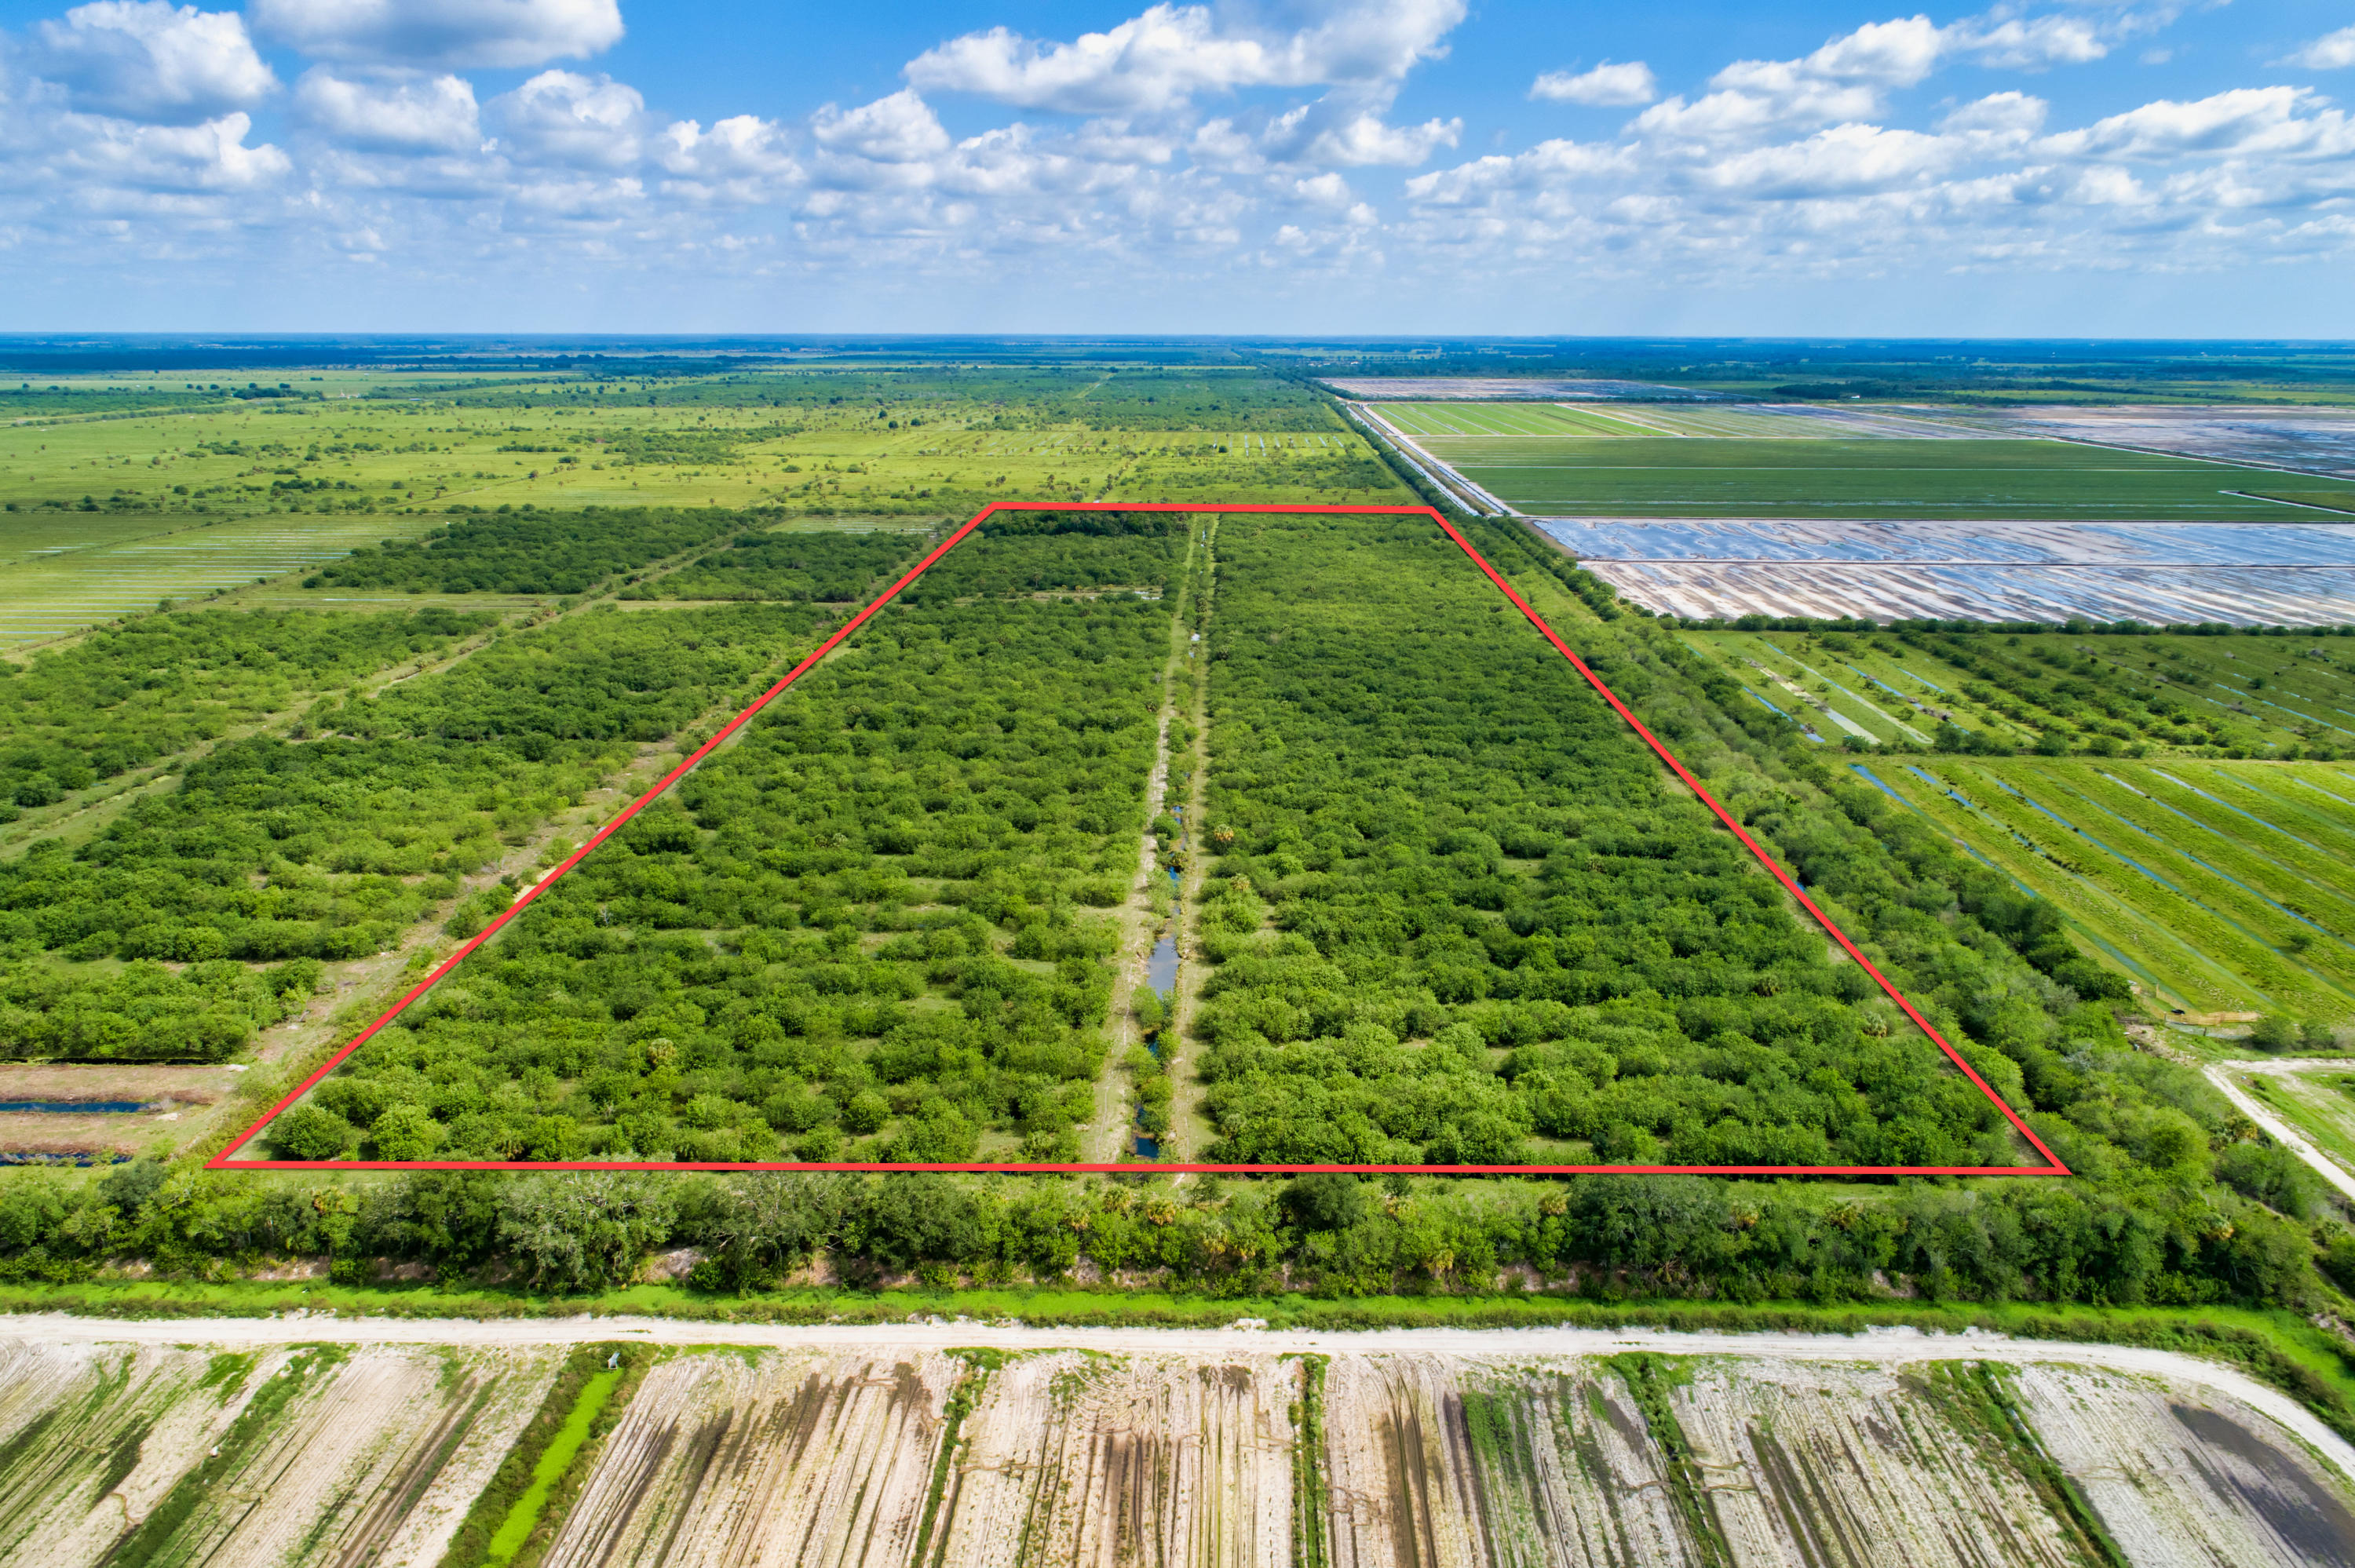 Tbd Carlton Road Extension Road, Fort Pierce, Florida 34947, ,Land,For Sale,Allapattah Drainage District Area,Carlton Road Extension,0.13,RX-10232750